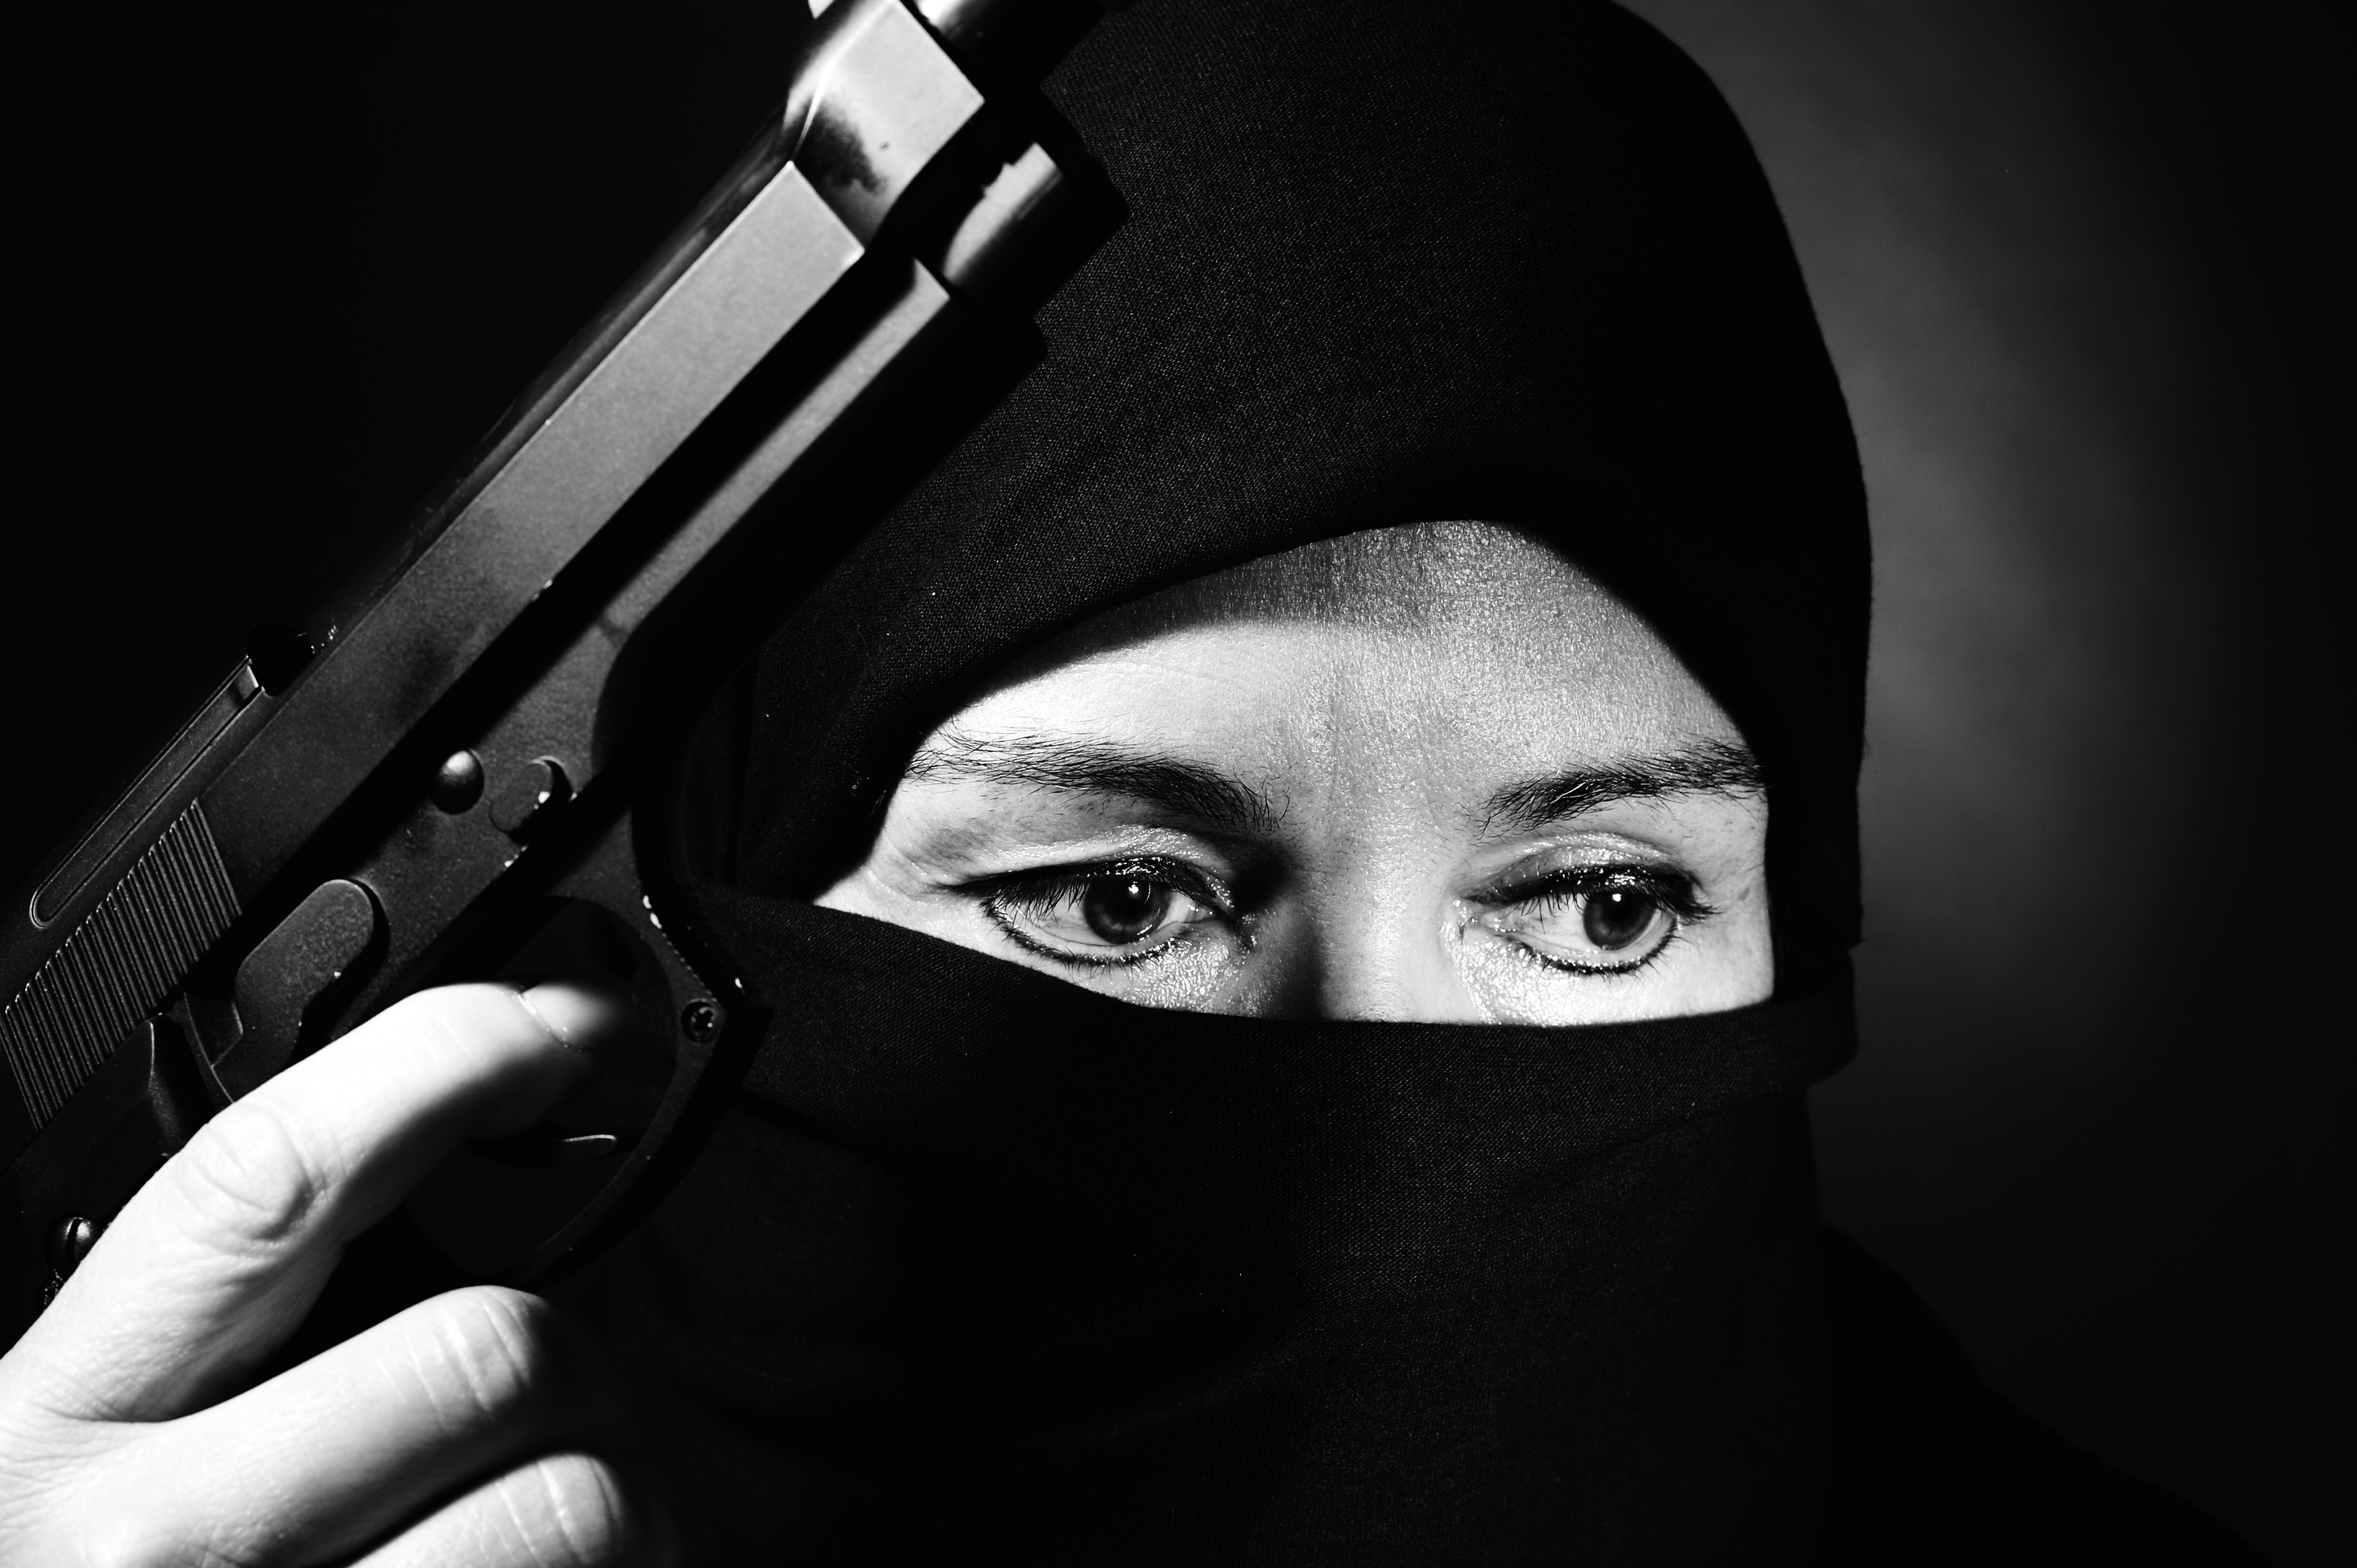 close-up of veiled middle eastern woman  with gun